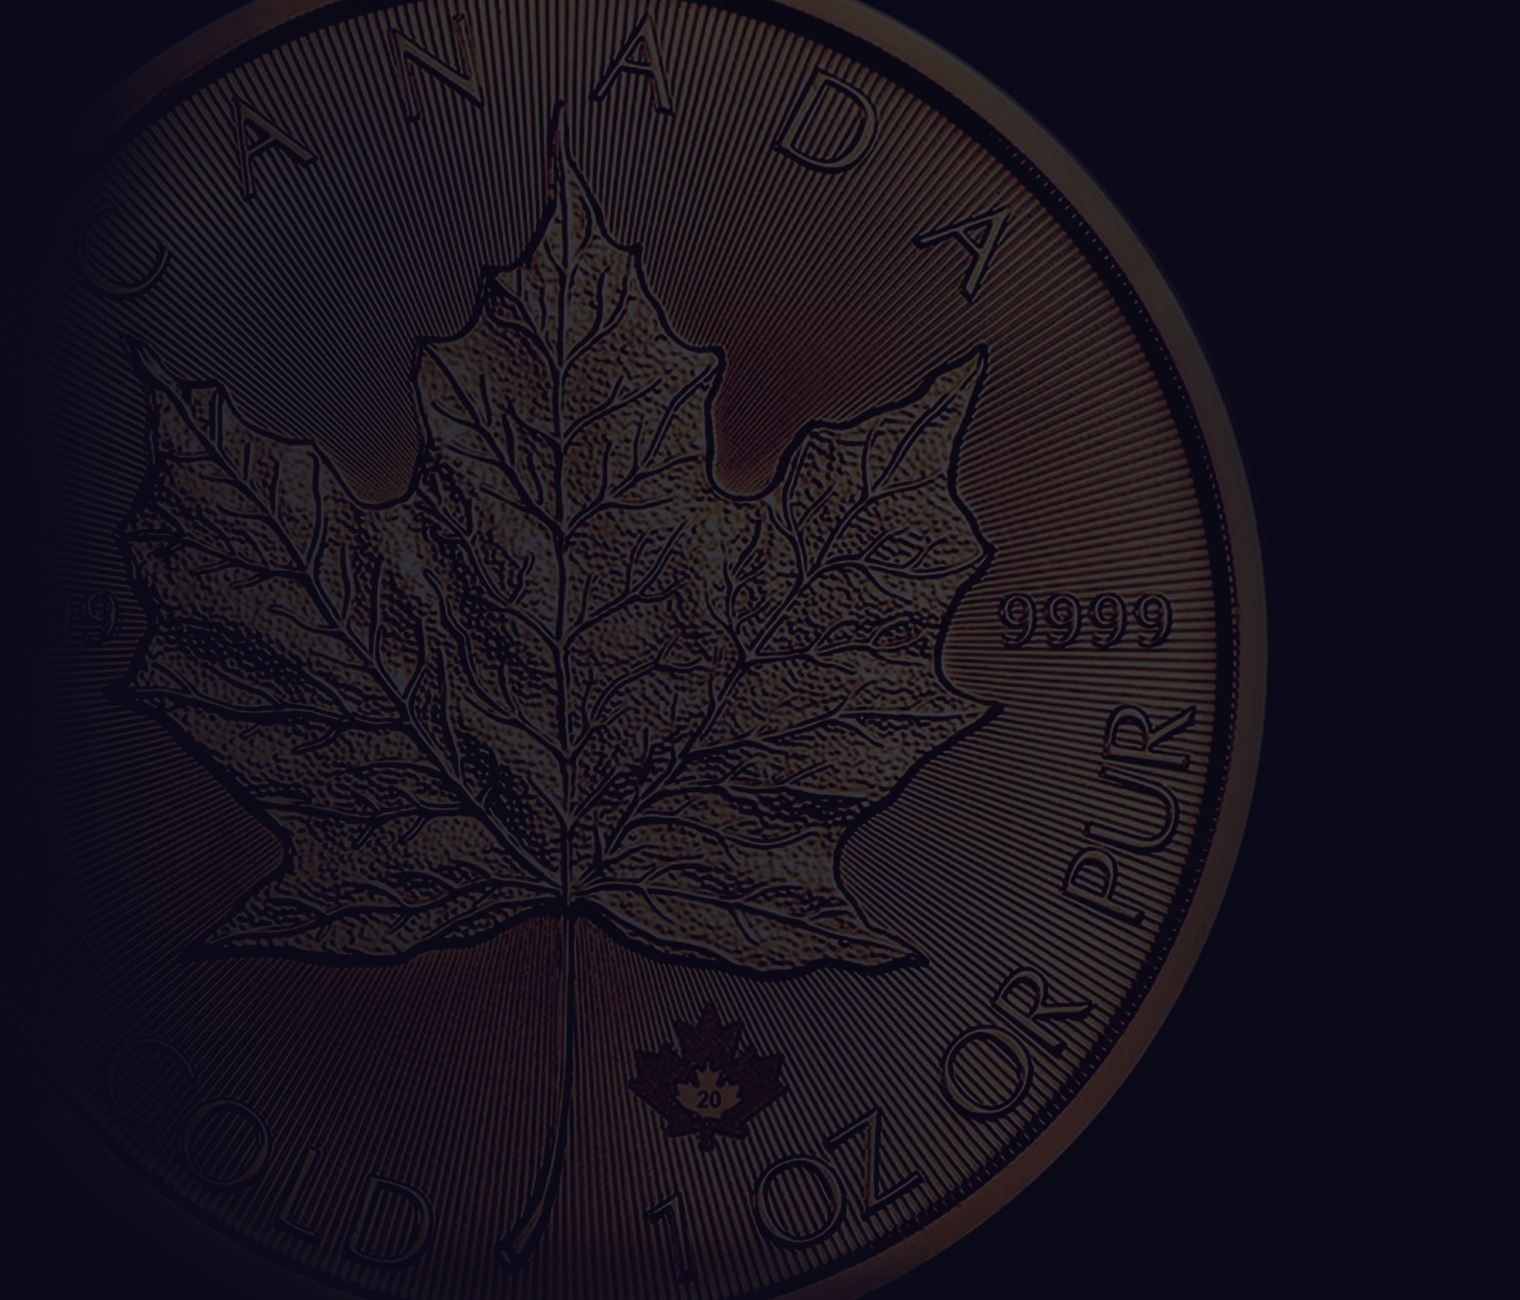 2020 Gold Maple Coin